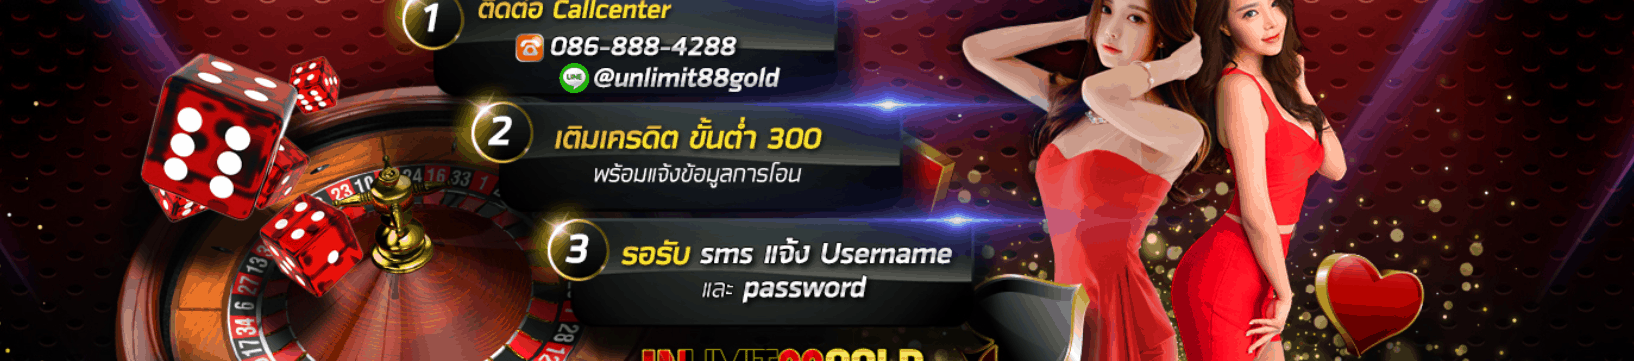 unlimit88gold